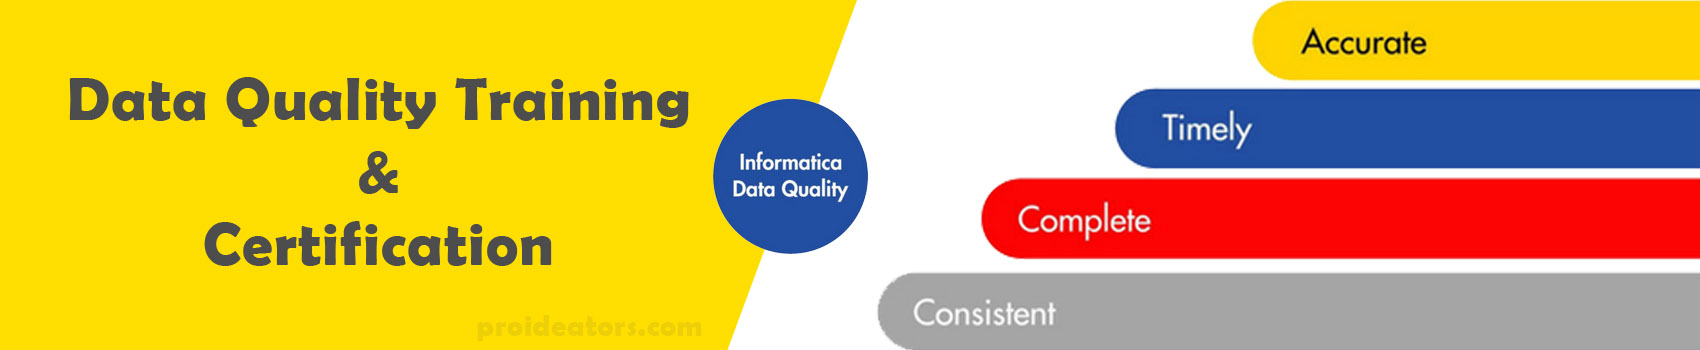 Informatica Data Quality Training and Certification